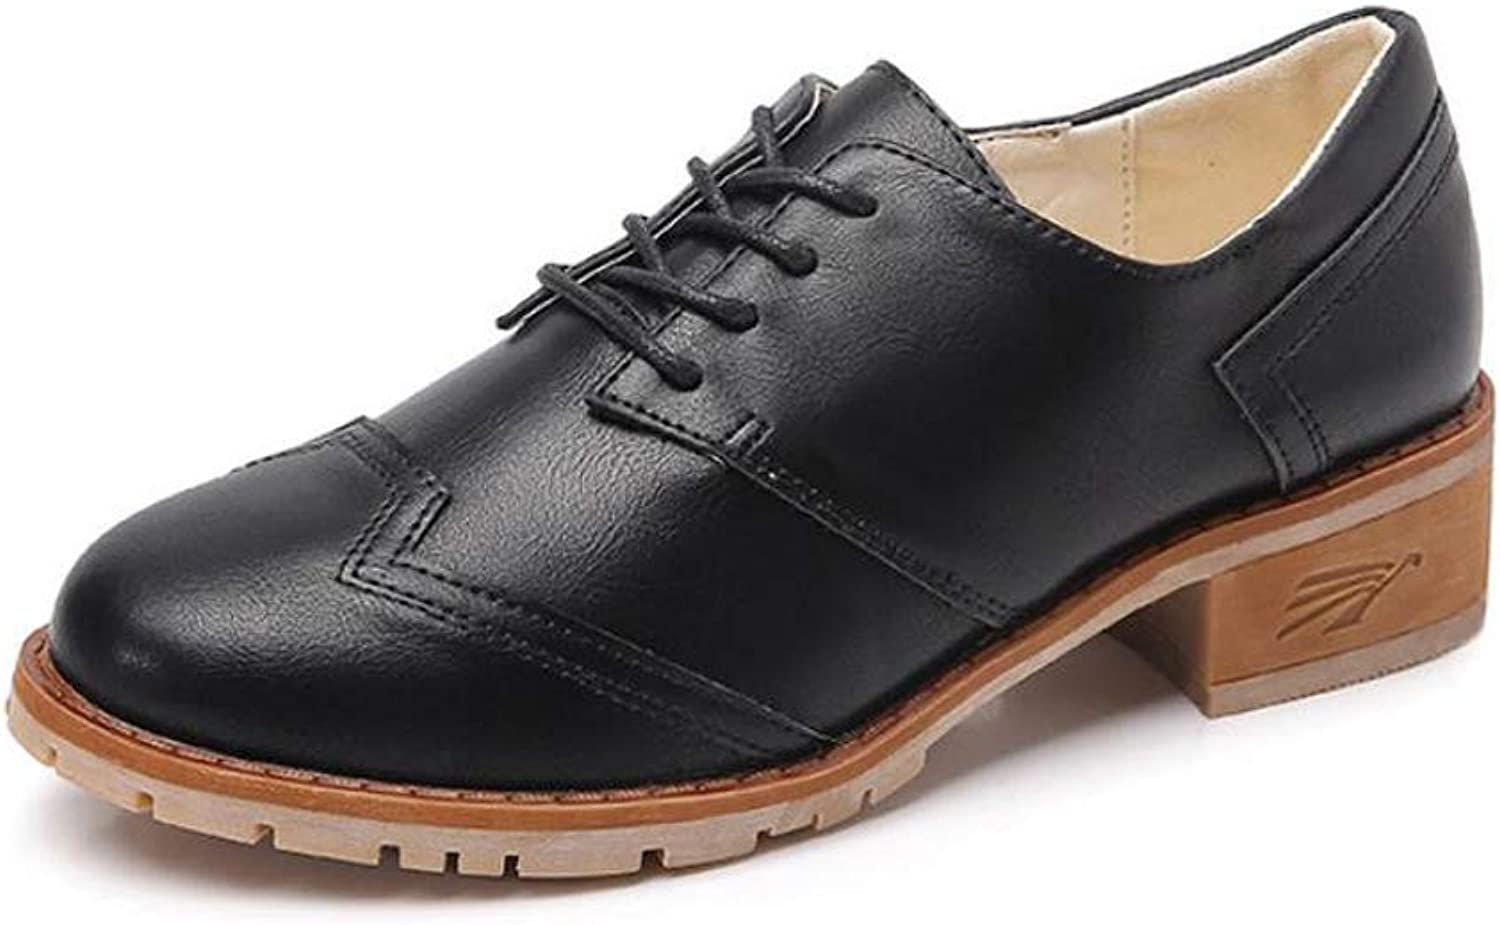 DANDANJIE Women's Leather shoes Autumn Casual Student Lace-up shoes British Large Size shoes